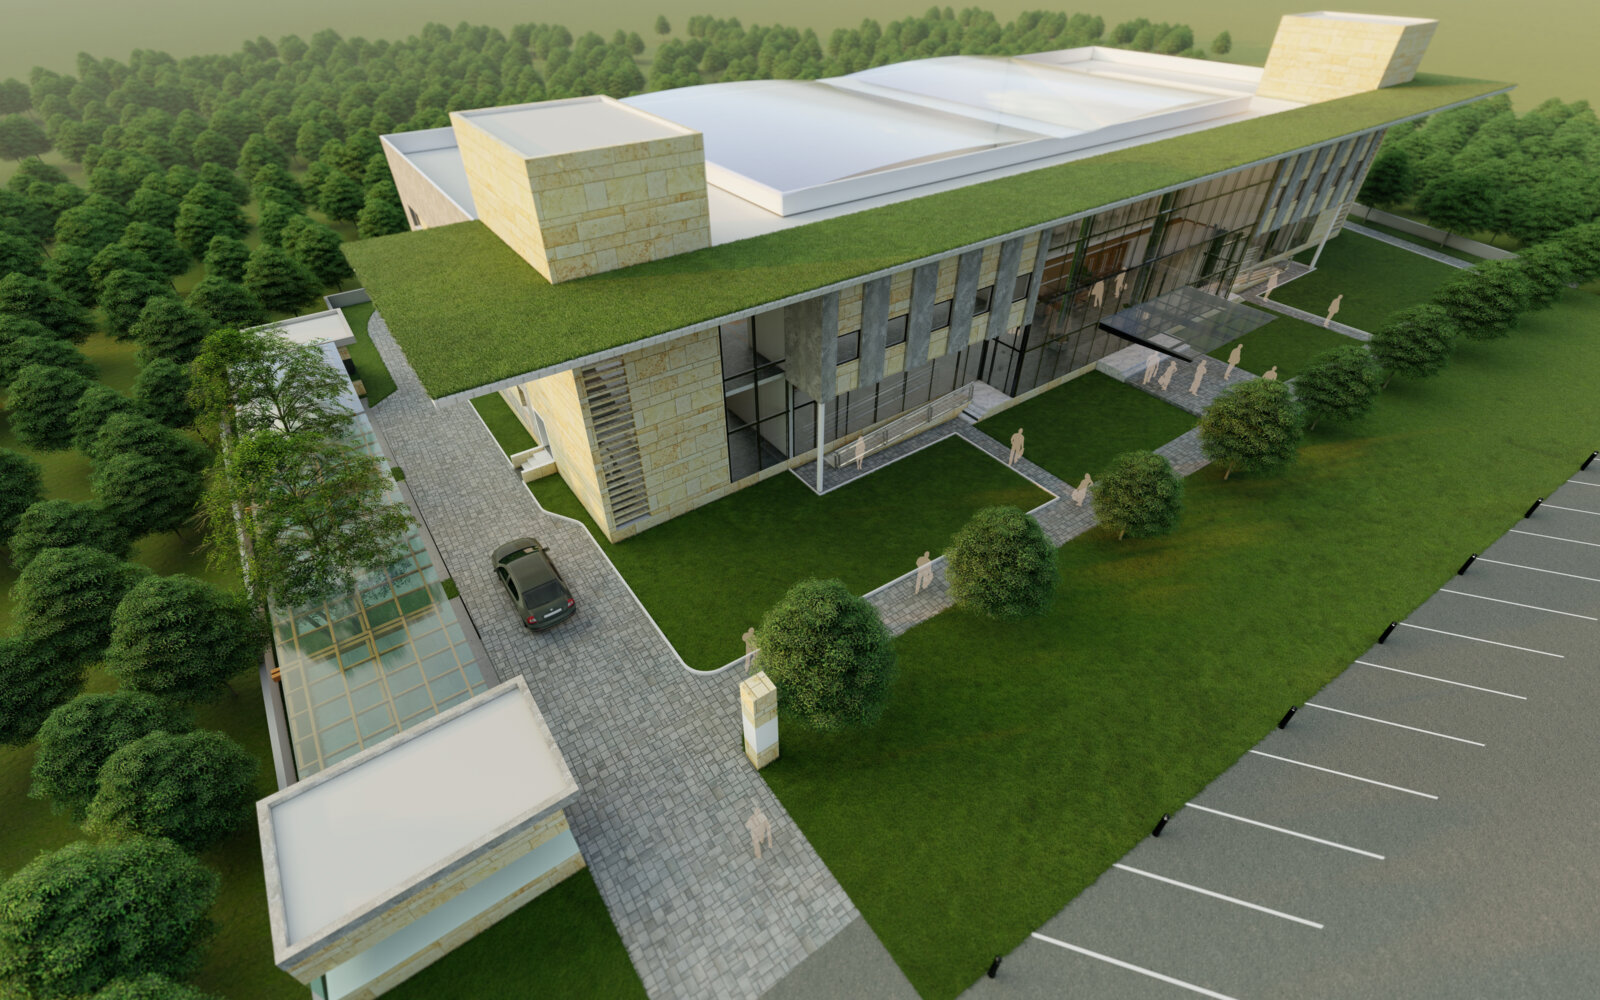 LCB Convention Centre Lucknow Cantonment Board external CGI